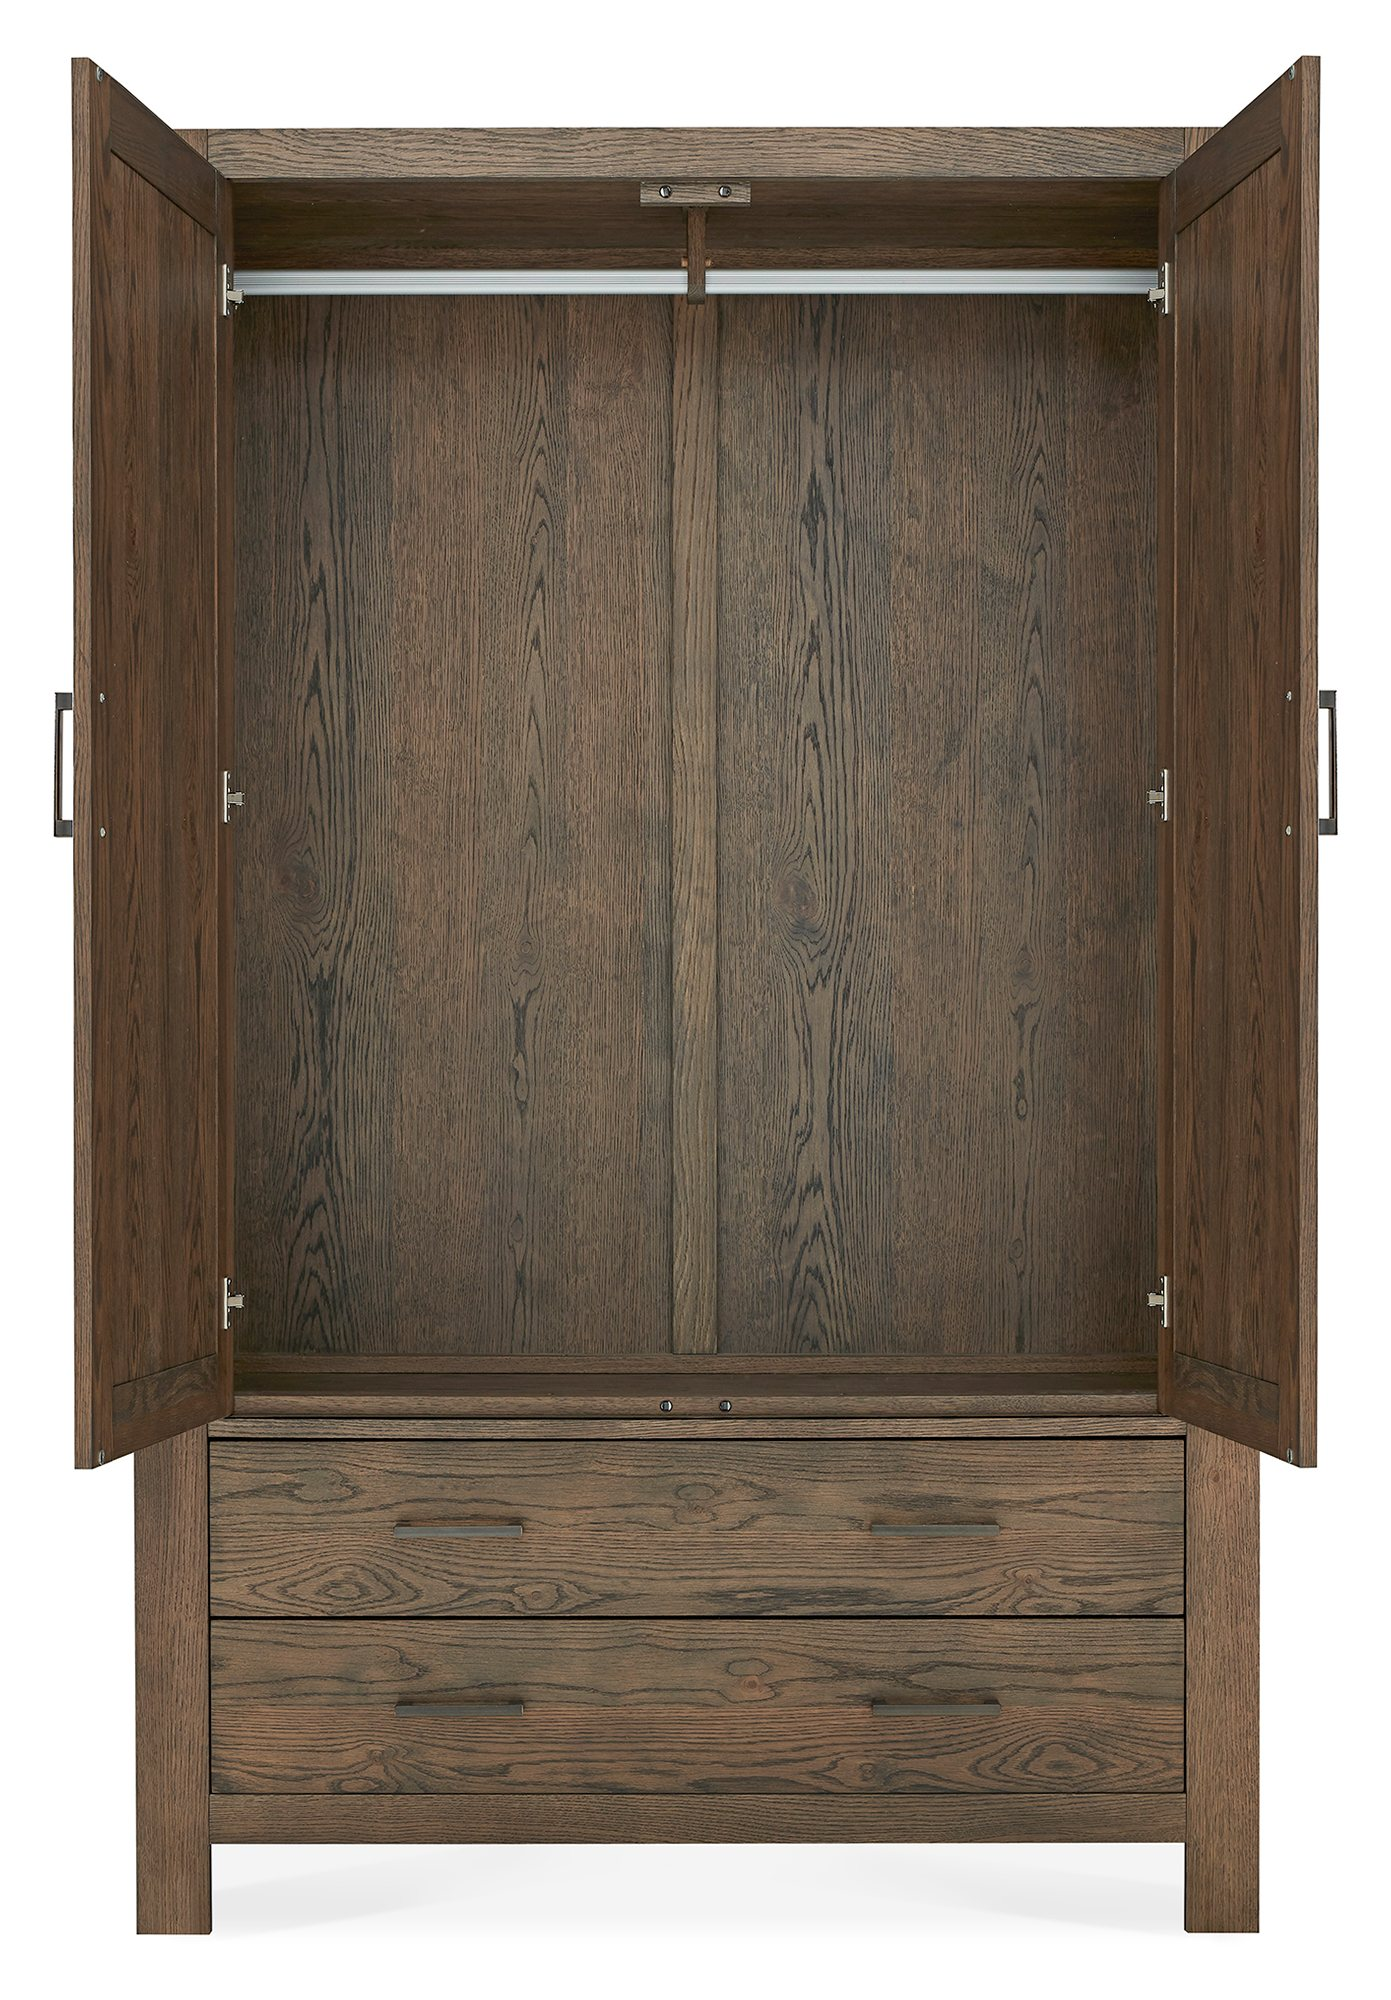 LILLE DARK OAK LARGE DOUBLE ROBE WITH DRAWERS - INSIDE DETAIL